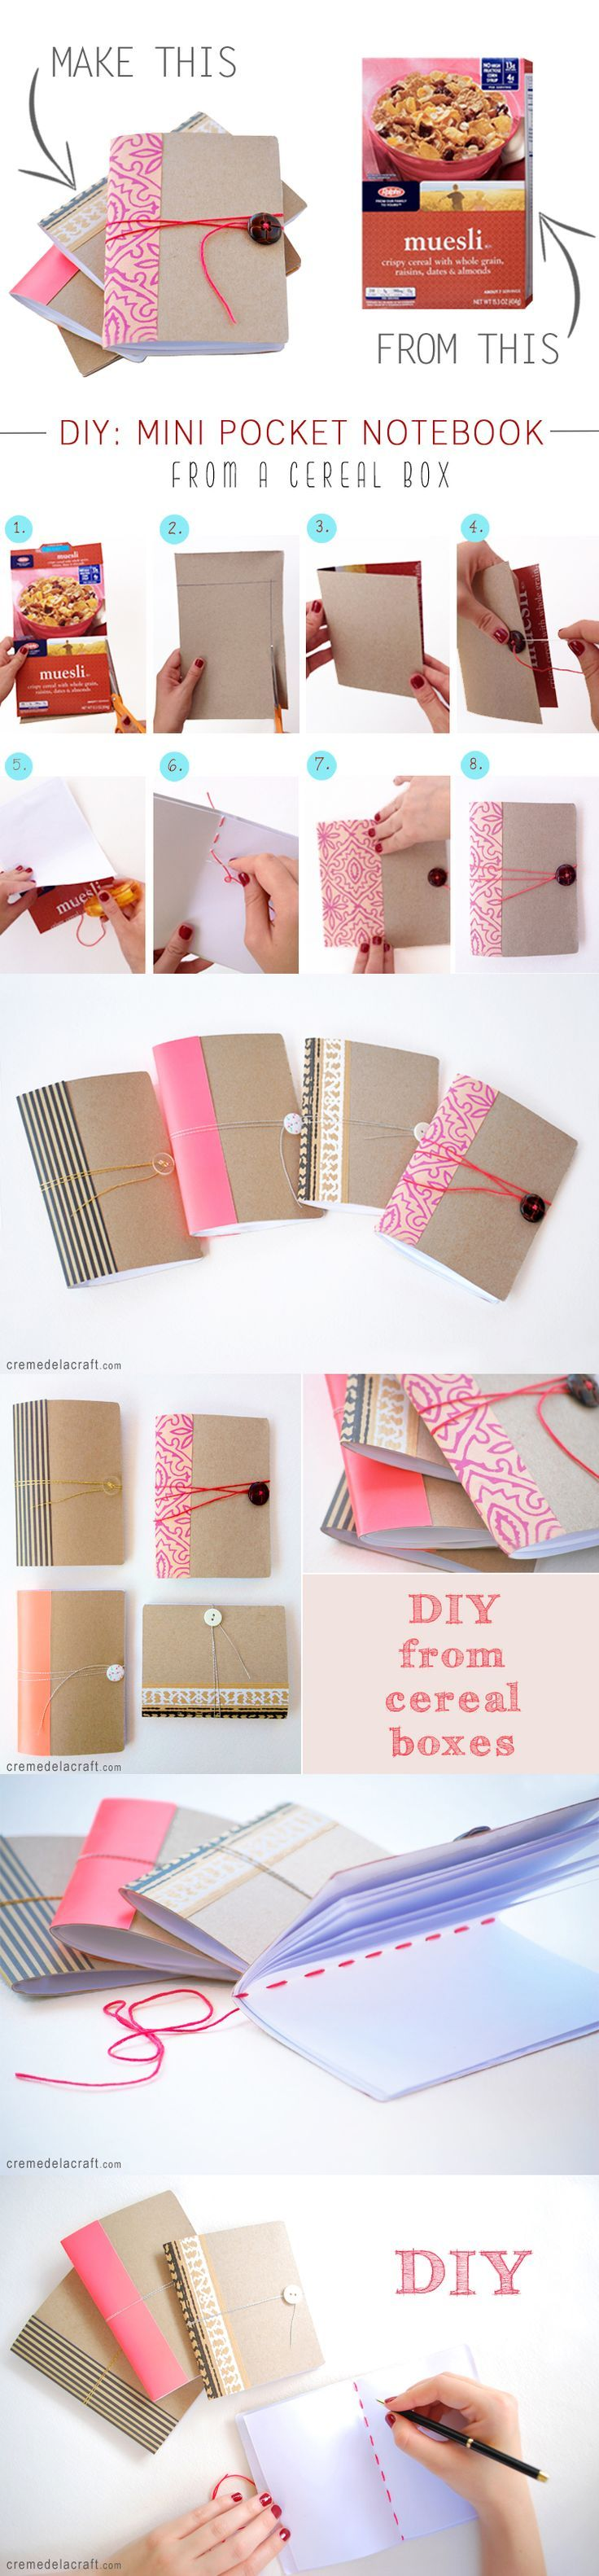 How to make a mini book from a cereal box. Another great project to do with the kids!